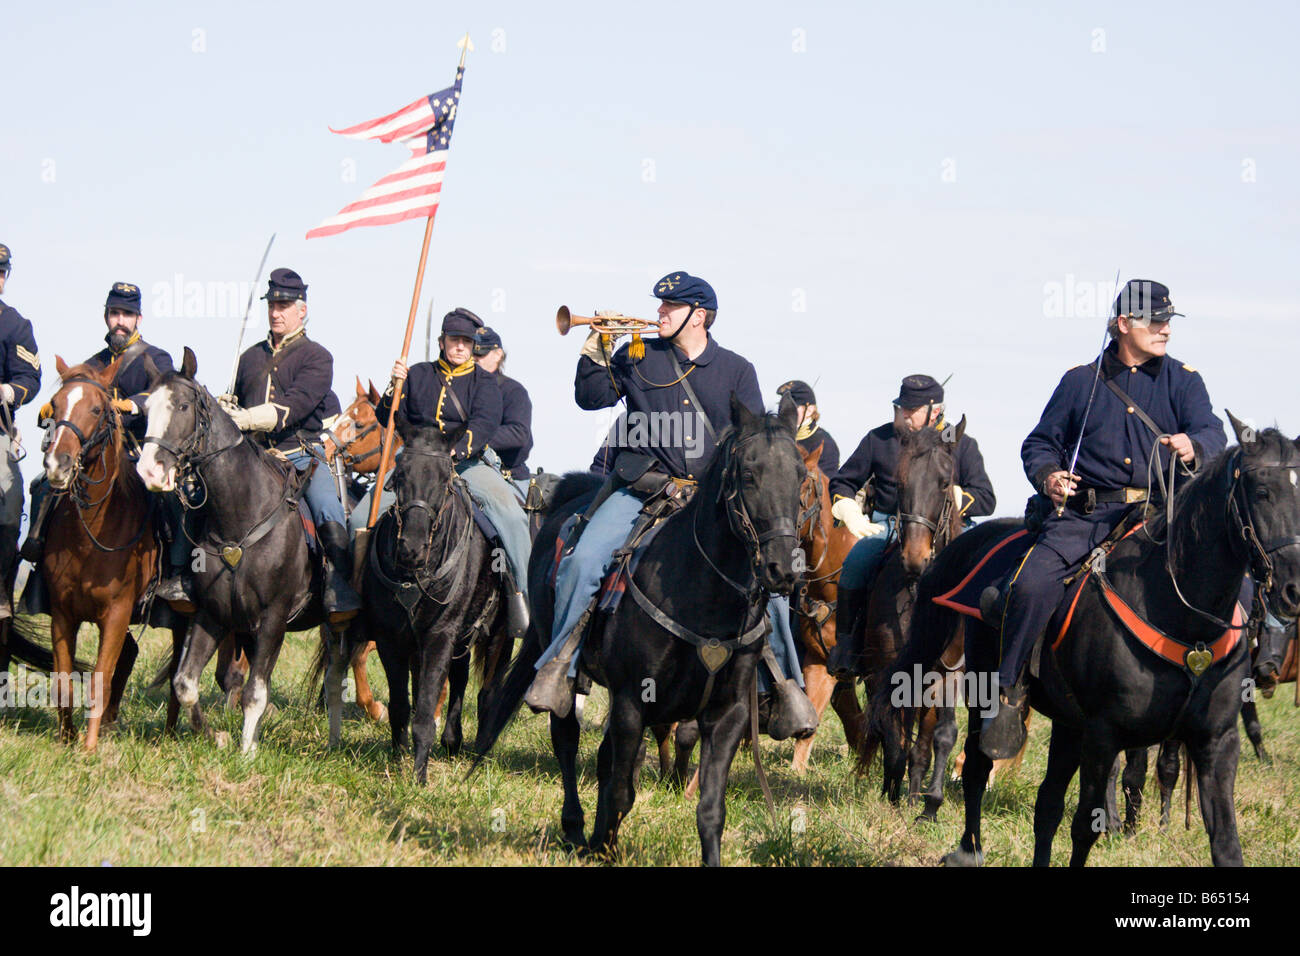 Civil War Battle Renactors at the renactment of the Battle of Berryville. - Stock Image